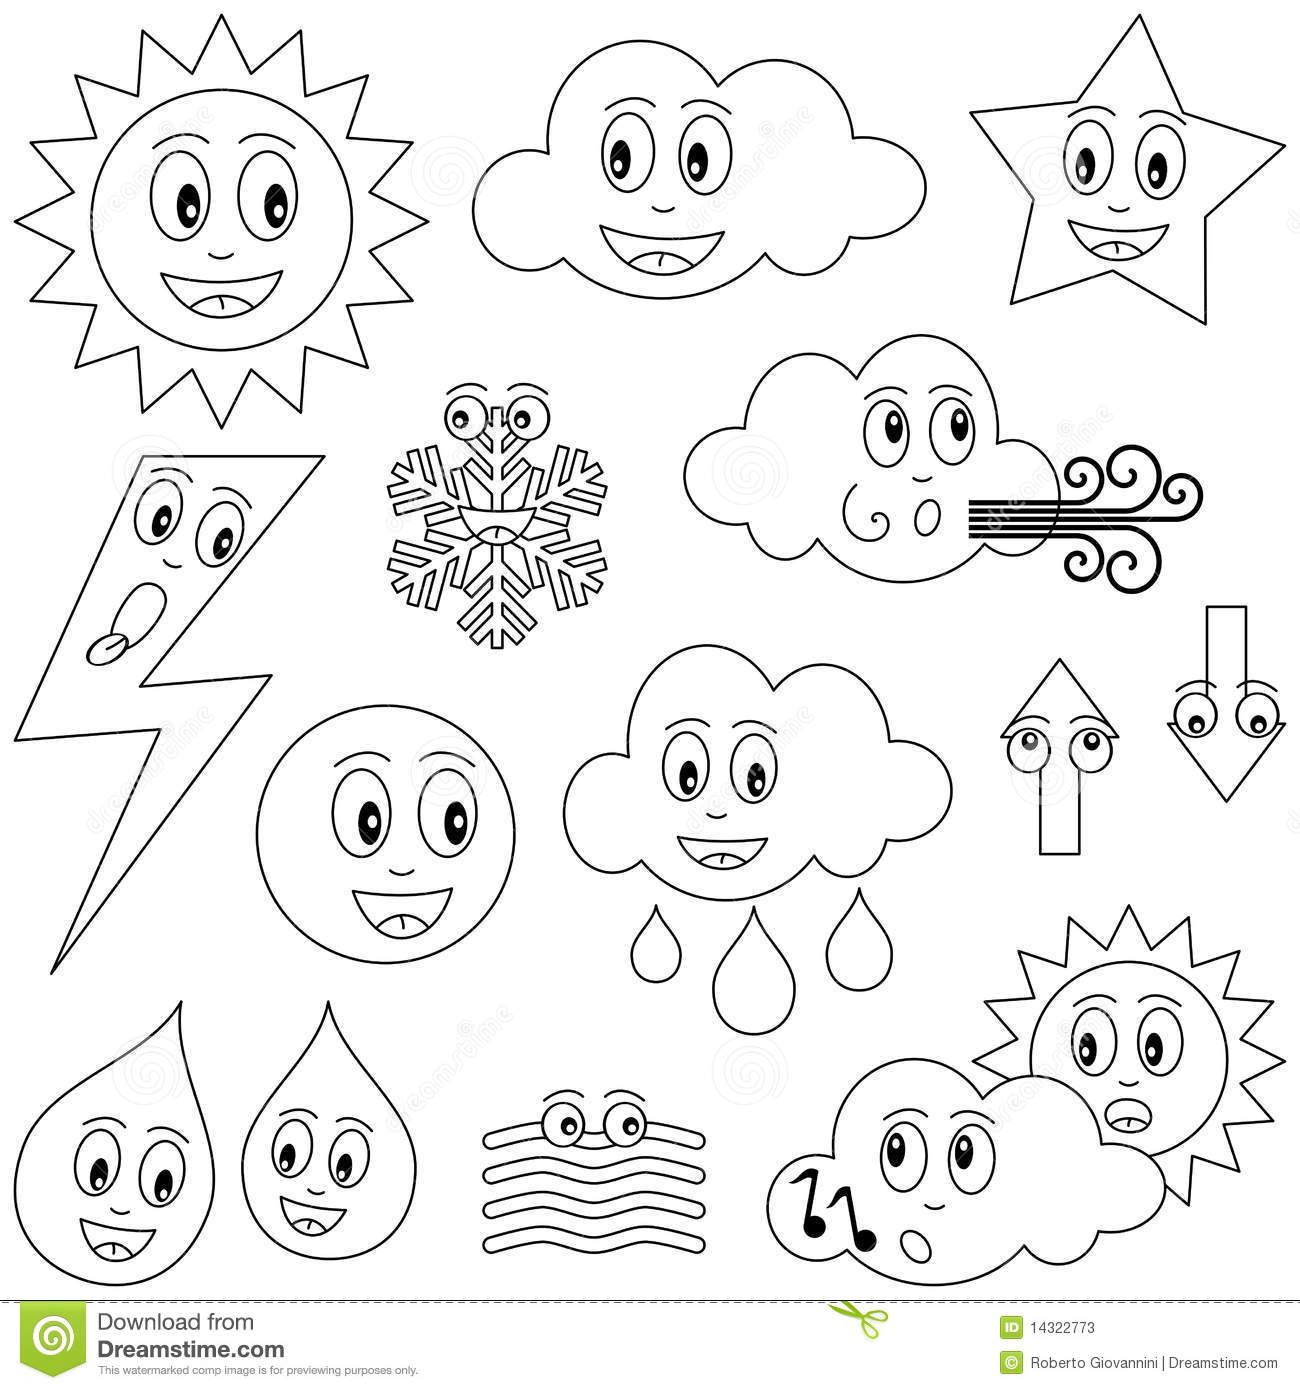 Weather Coloring Pages - Classroom Doodles | 1390x1300